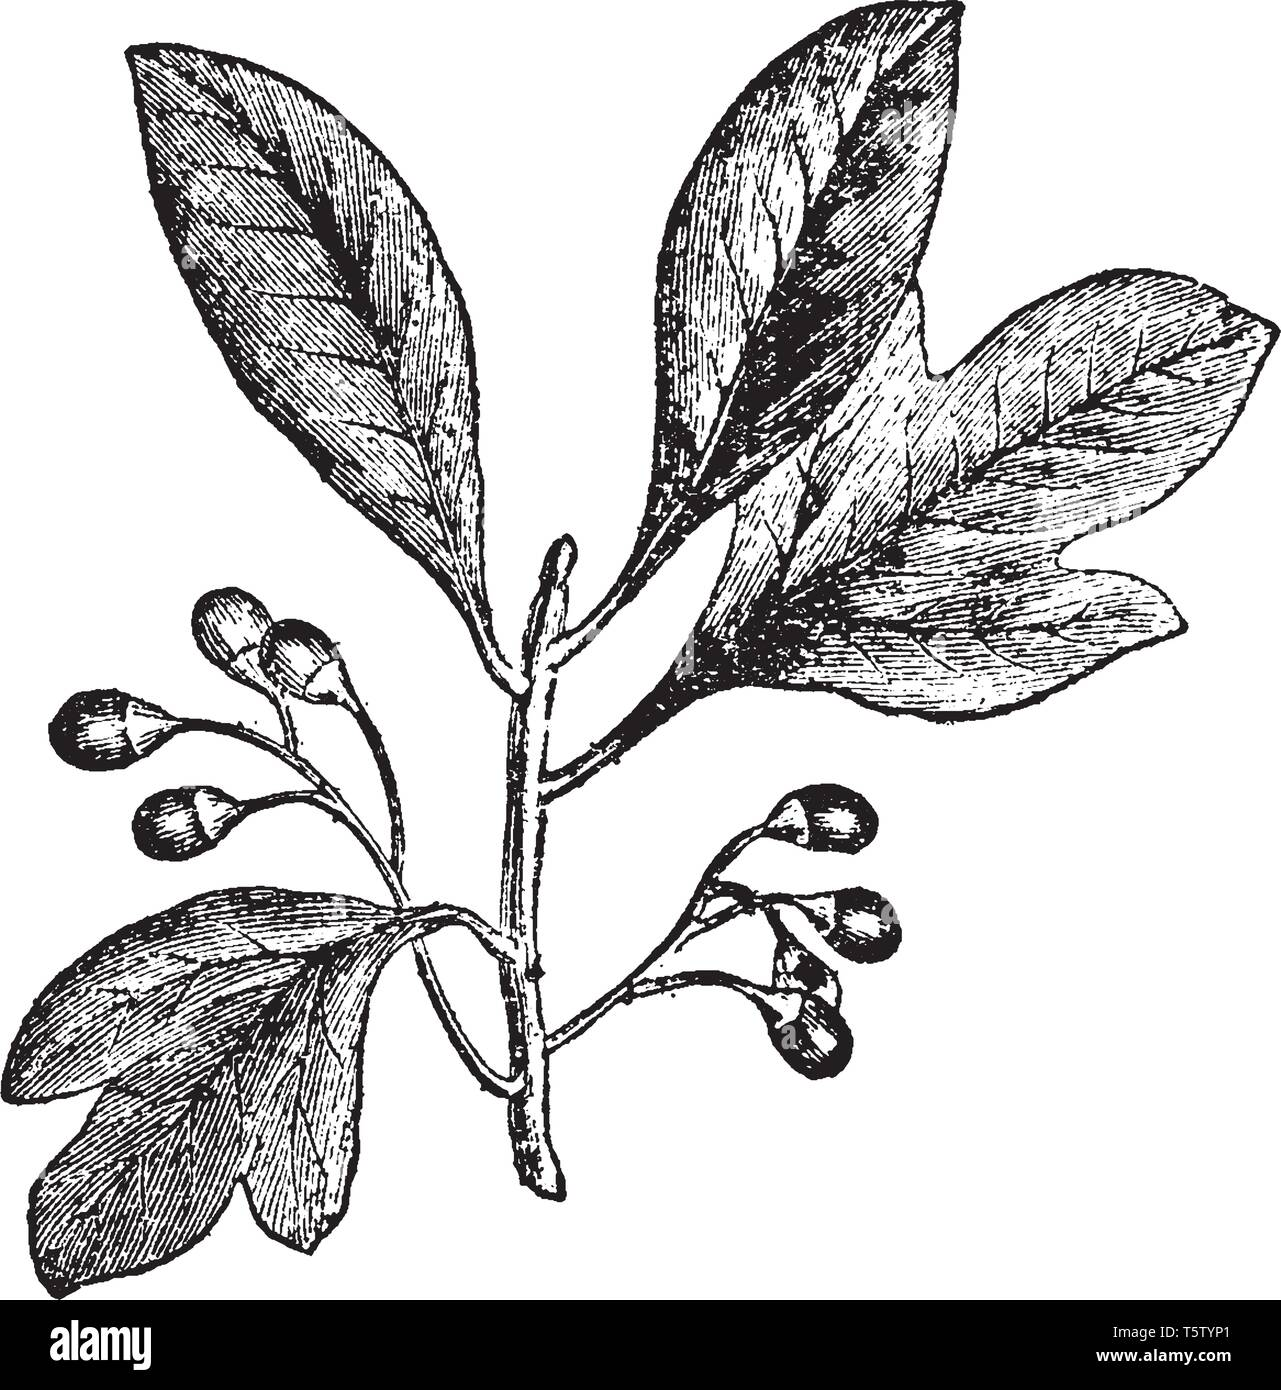 A branch of Sassafras plant. Plant belongs to Lauraceae family and is native to North America and eastern Asia. Plant having three distinct leaf patte - Stock Vector